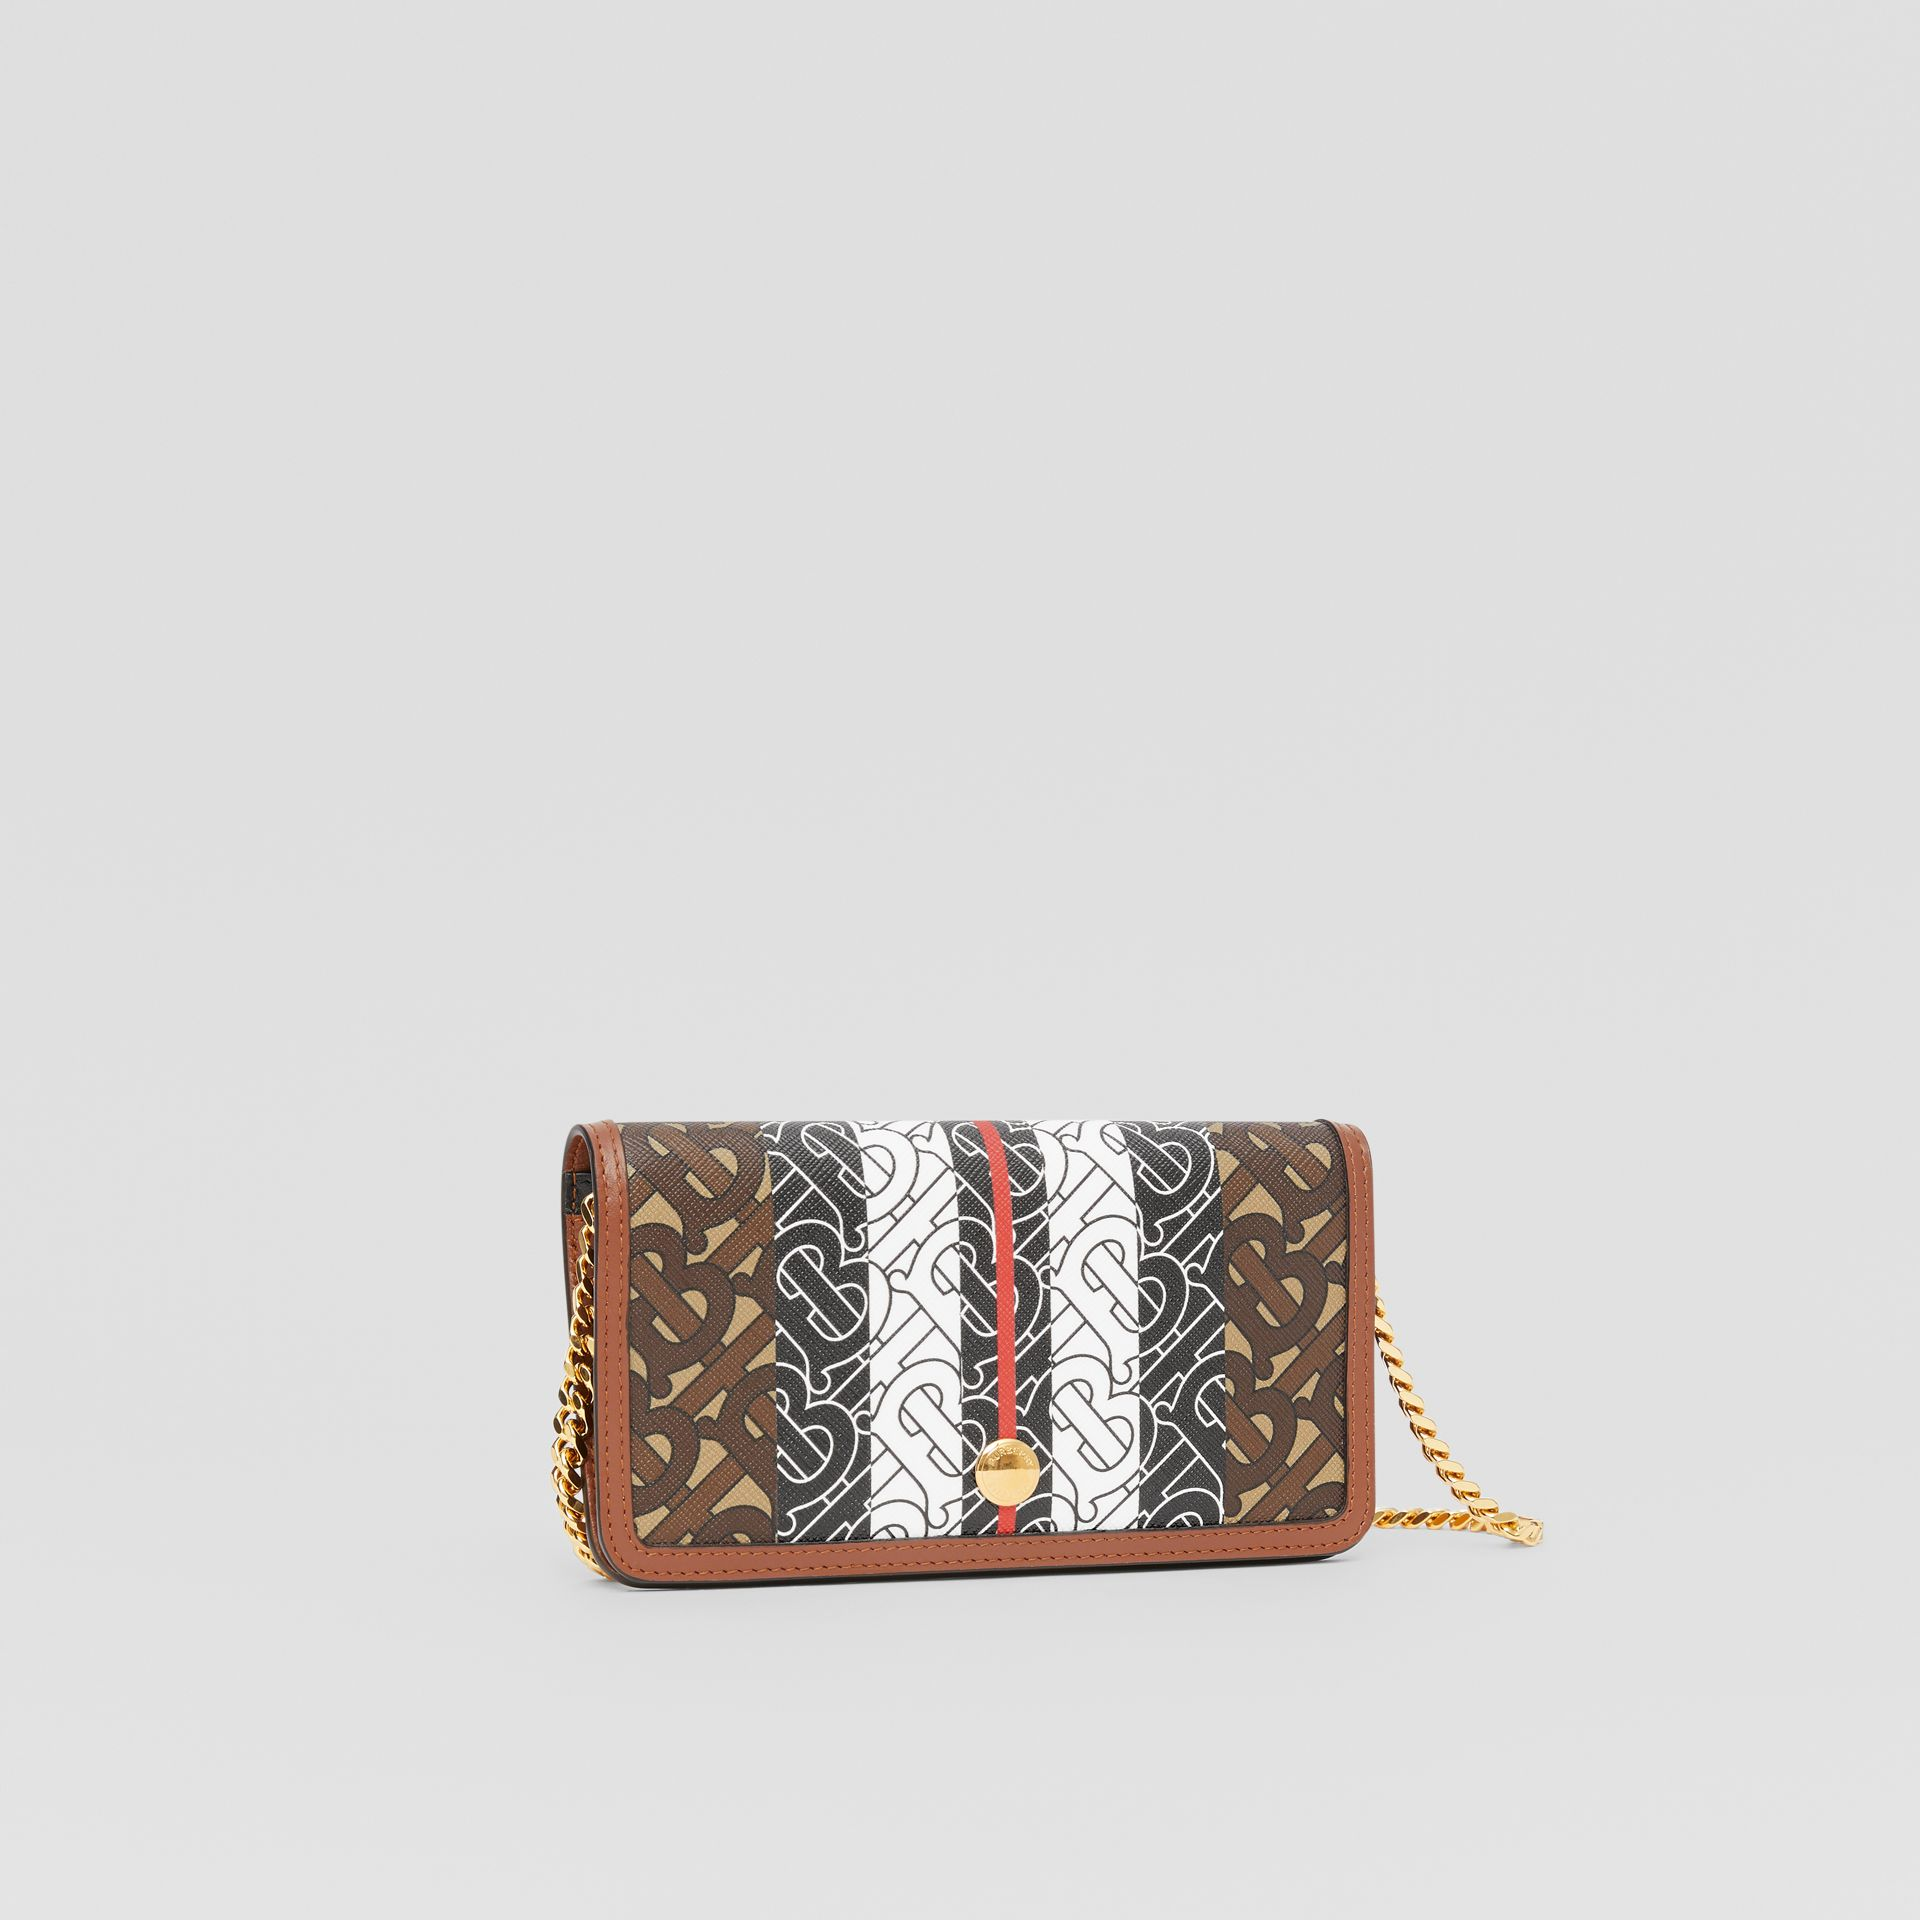 Monogram Stripe E-canvas Phone Wallet with Strap in Bridle Brown - Women | Burberry - gallery image 6